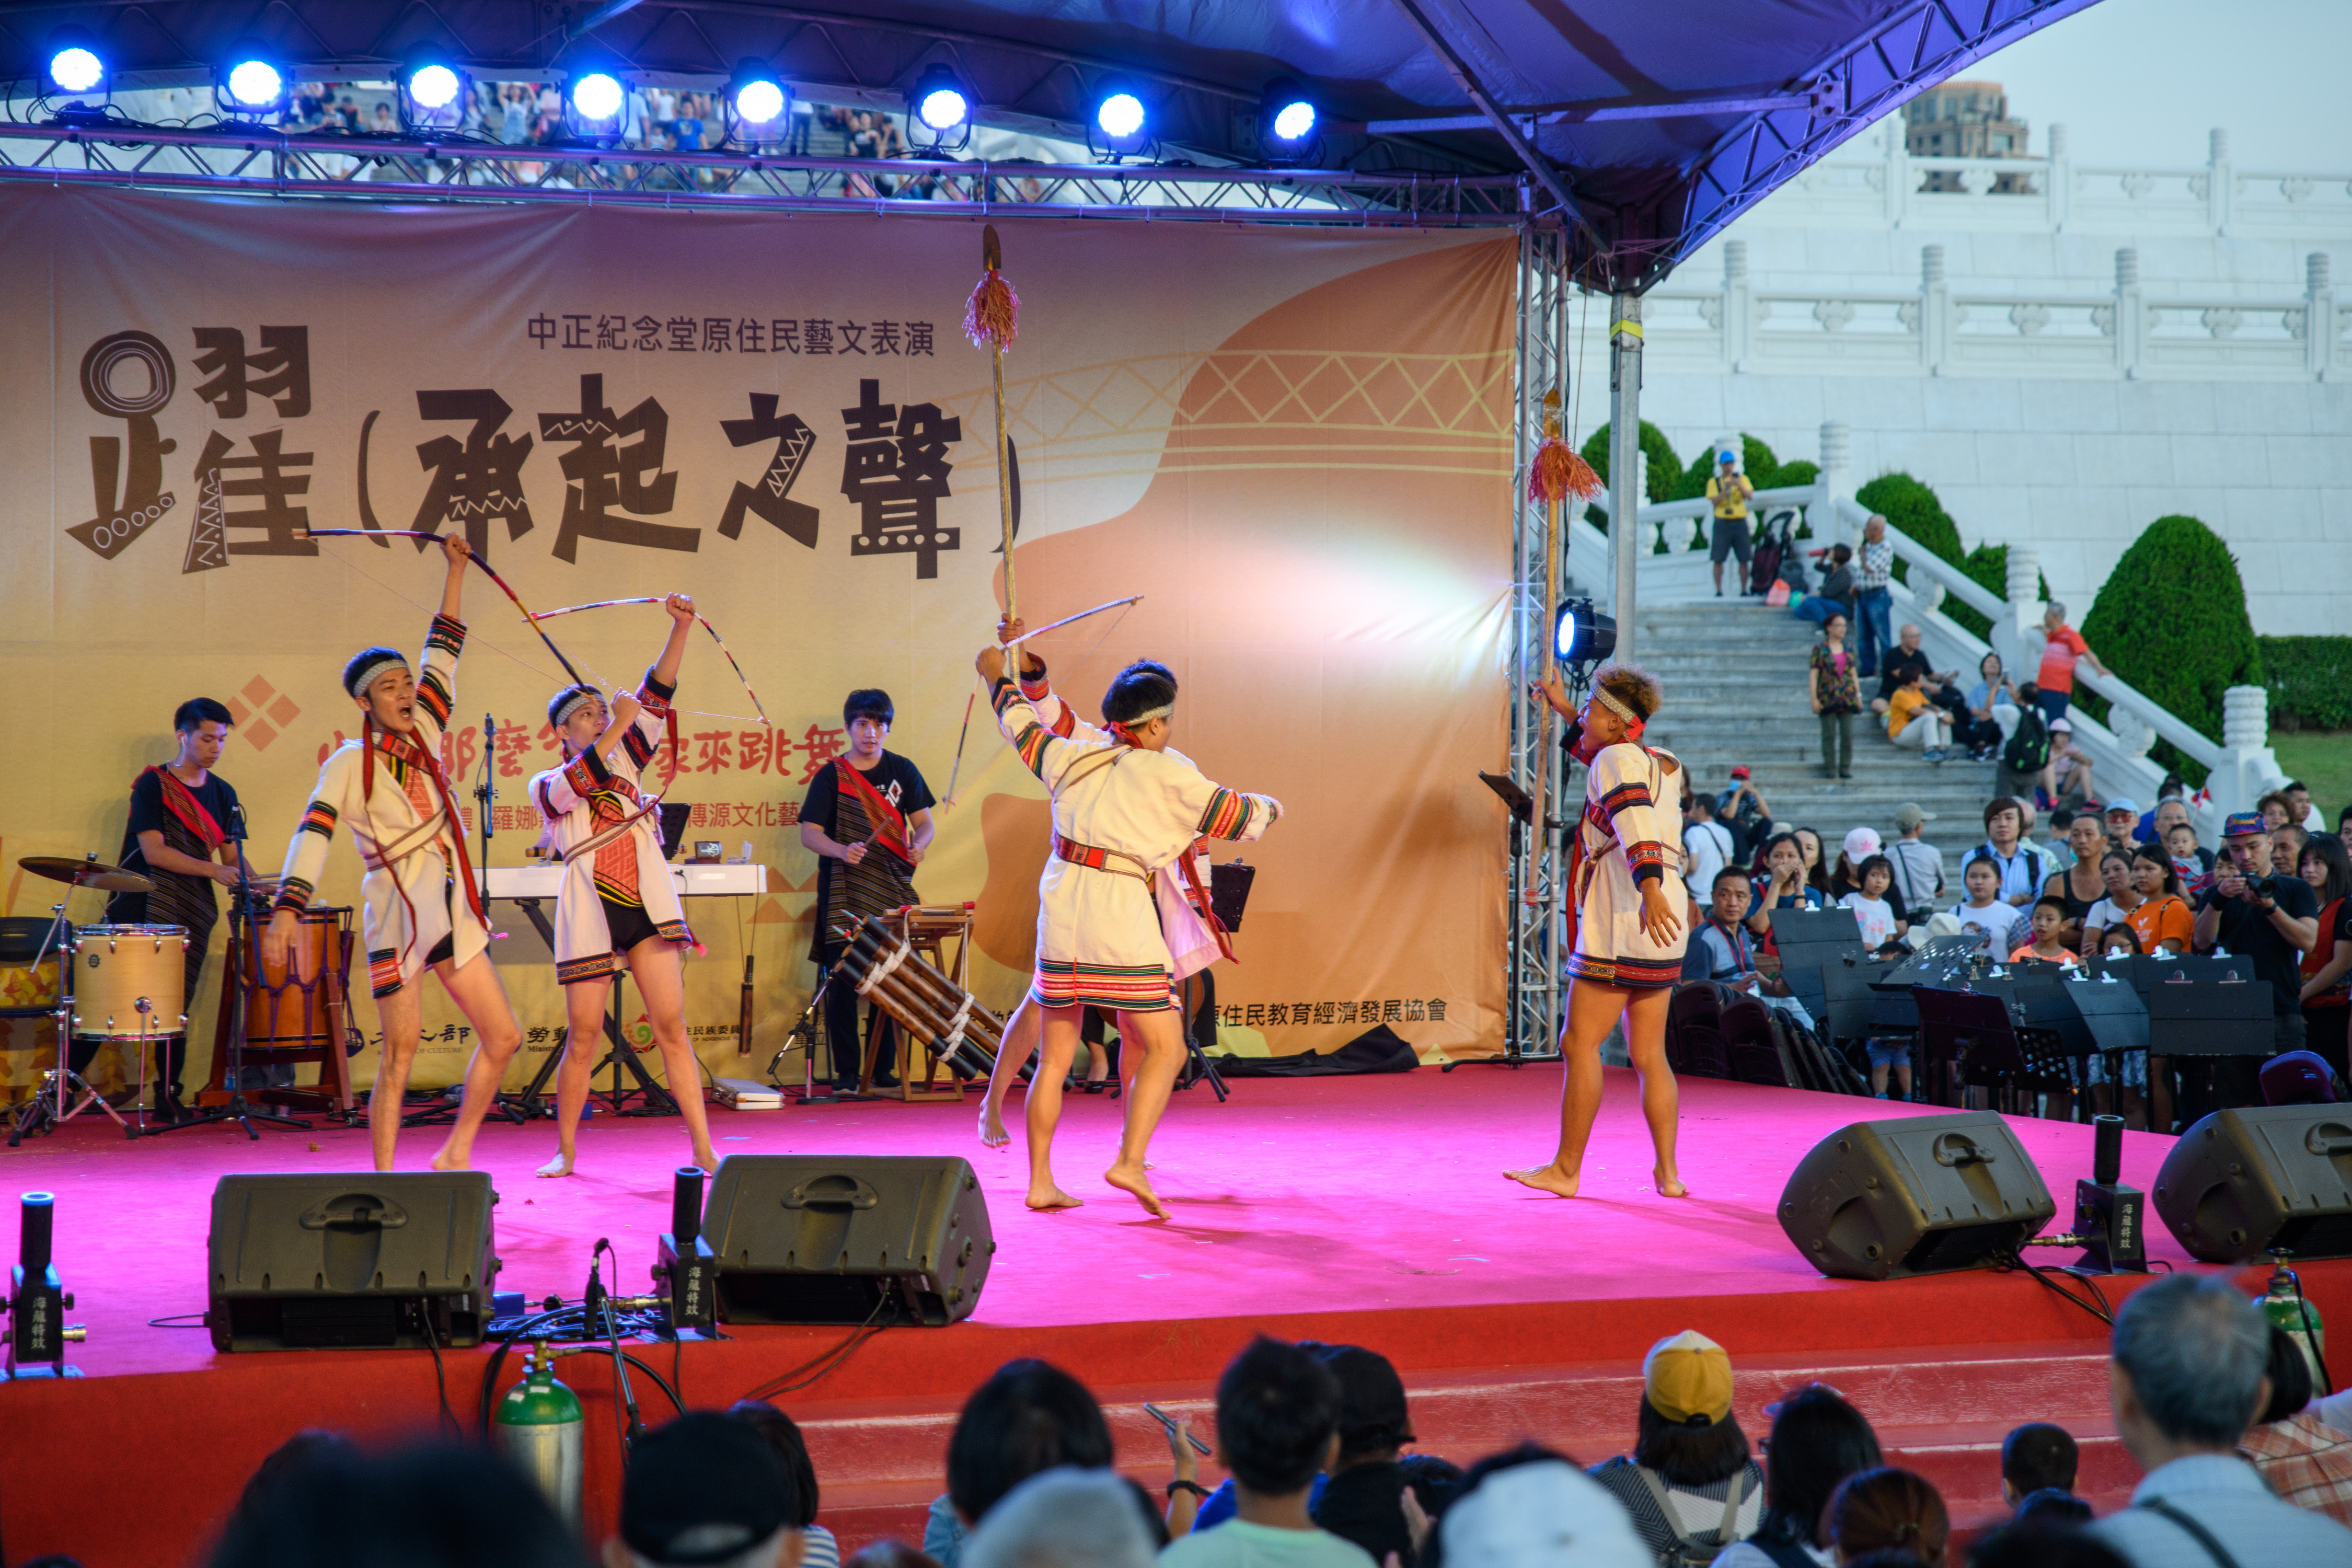 20191010 Taiwanese indigenous peoples' outdoor performance